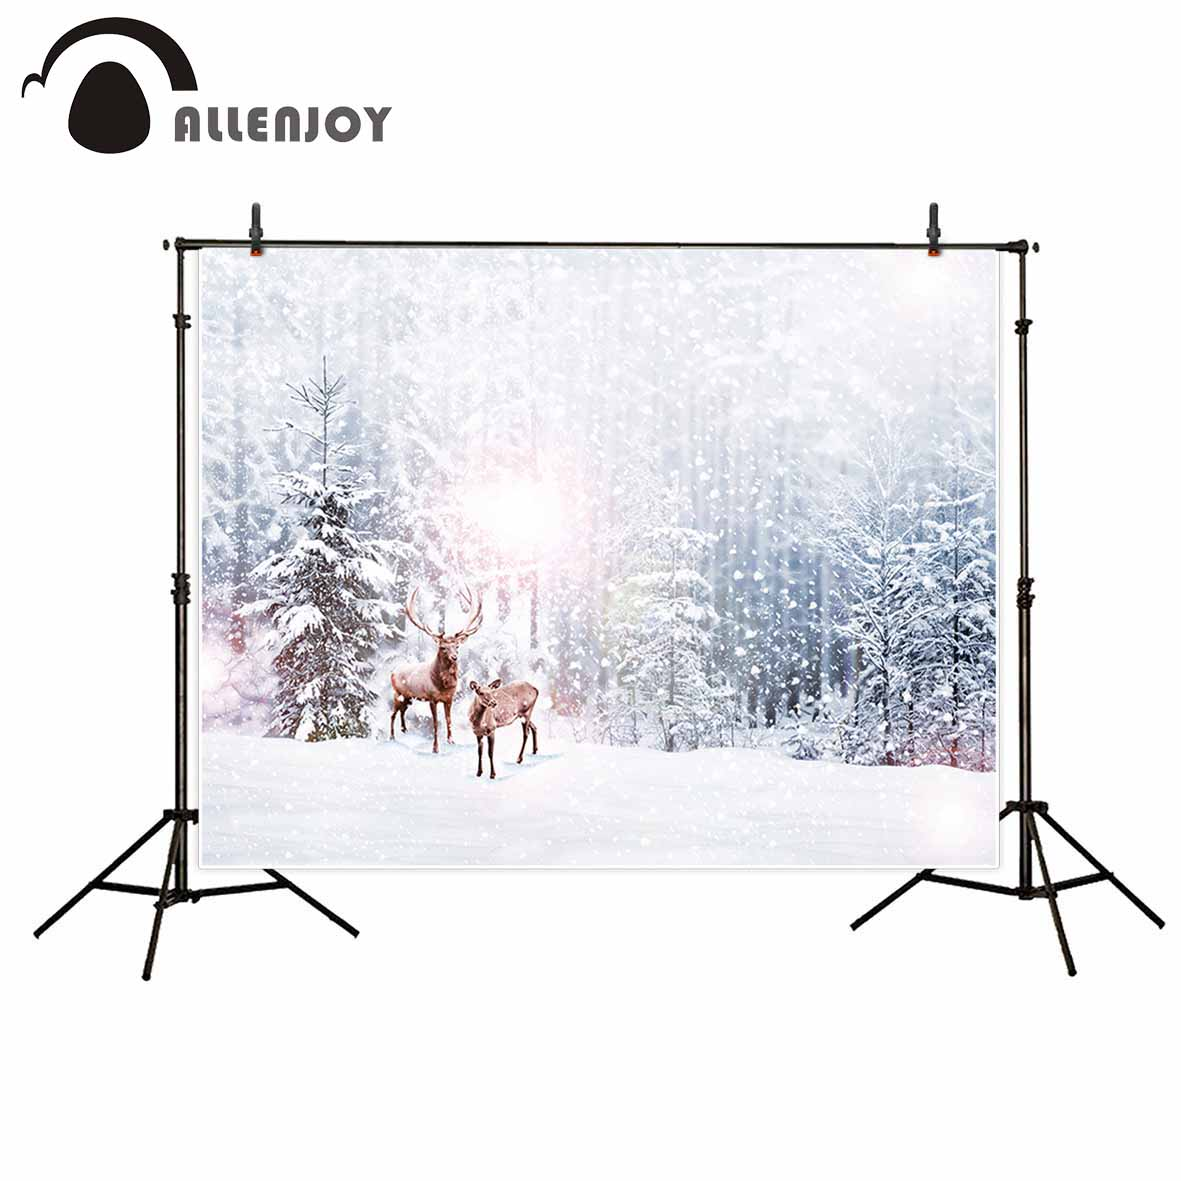 Allenjoy Winter background forest pine elk snow photography backdrops christmas decorations new backdrops photo studio august burns red schweinfurt